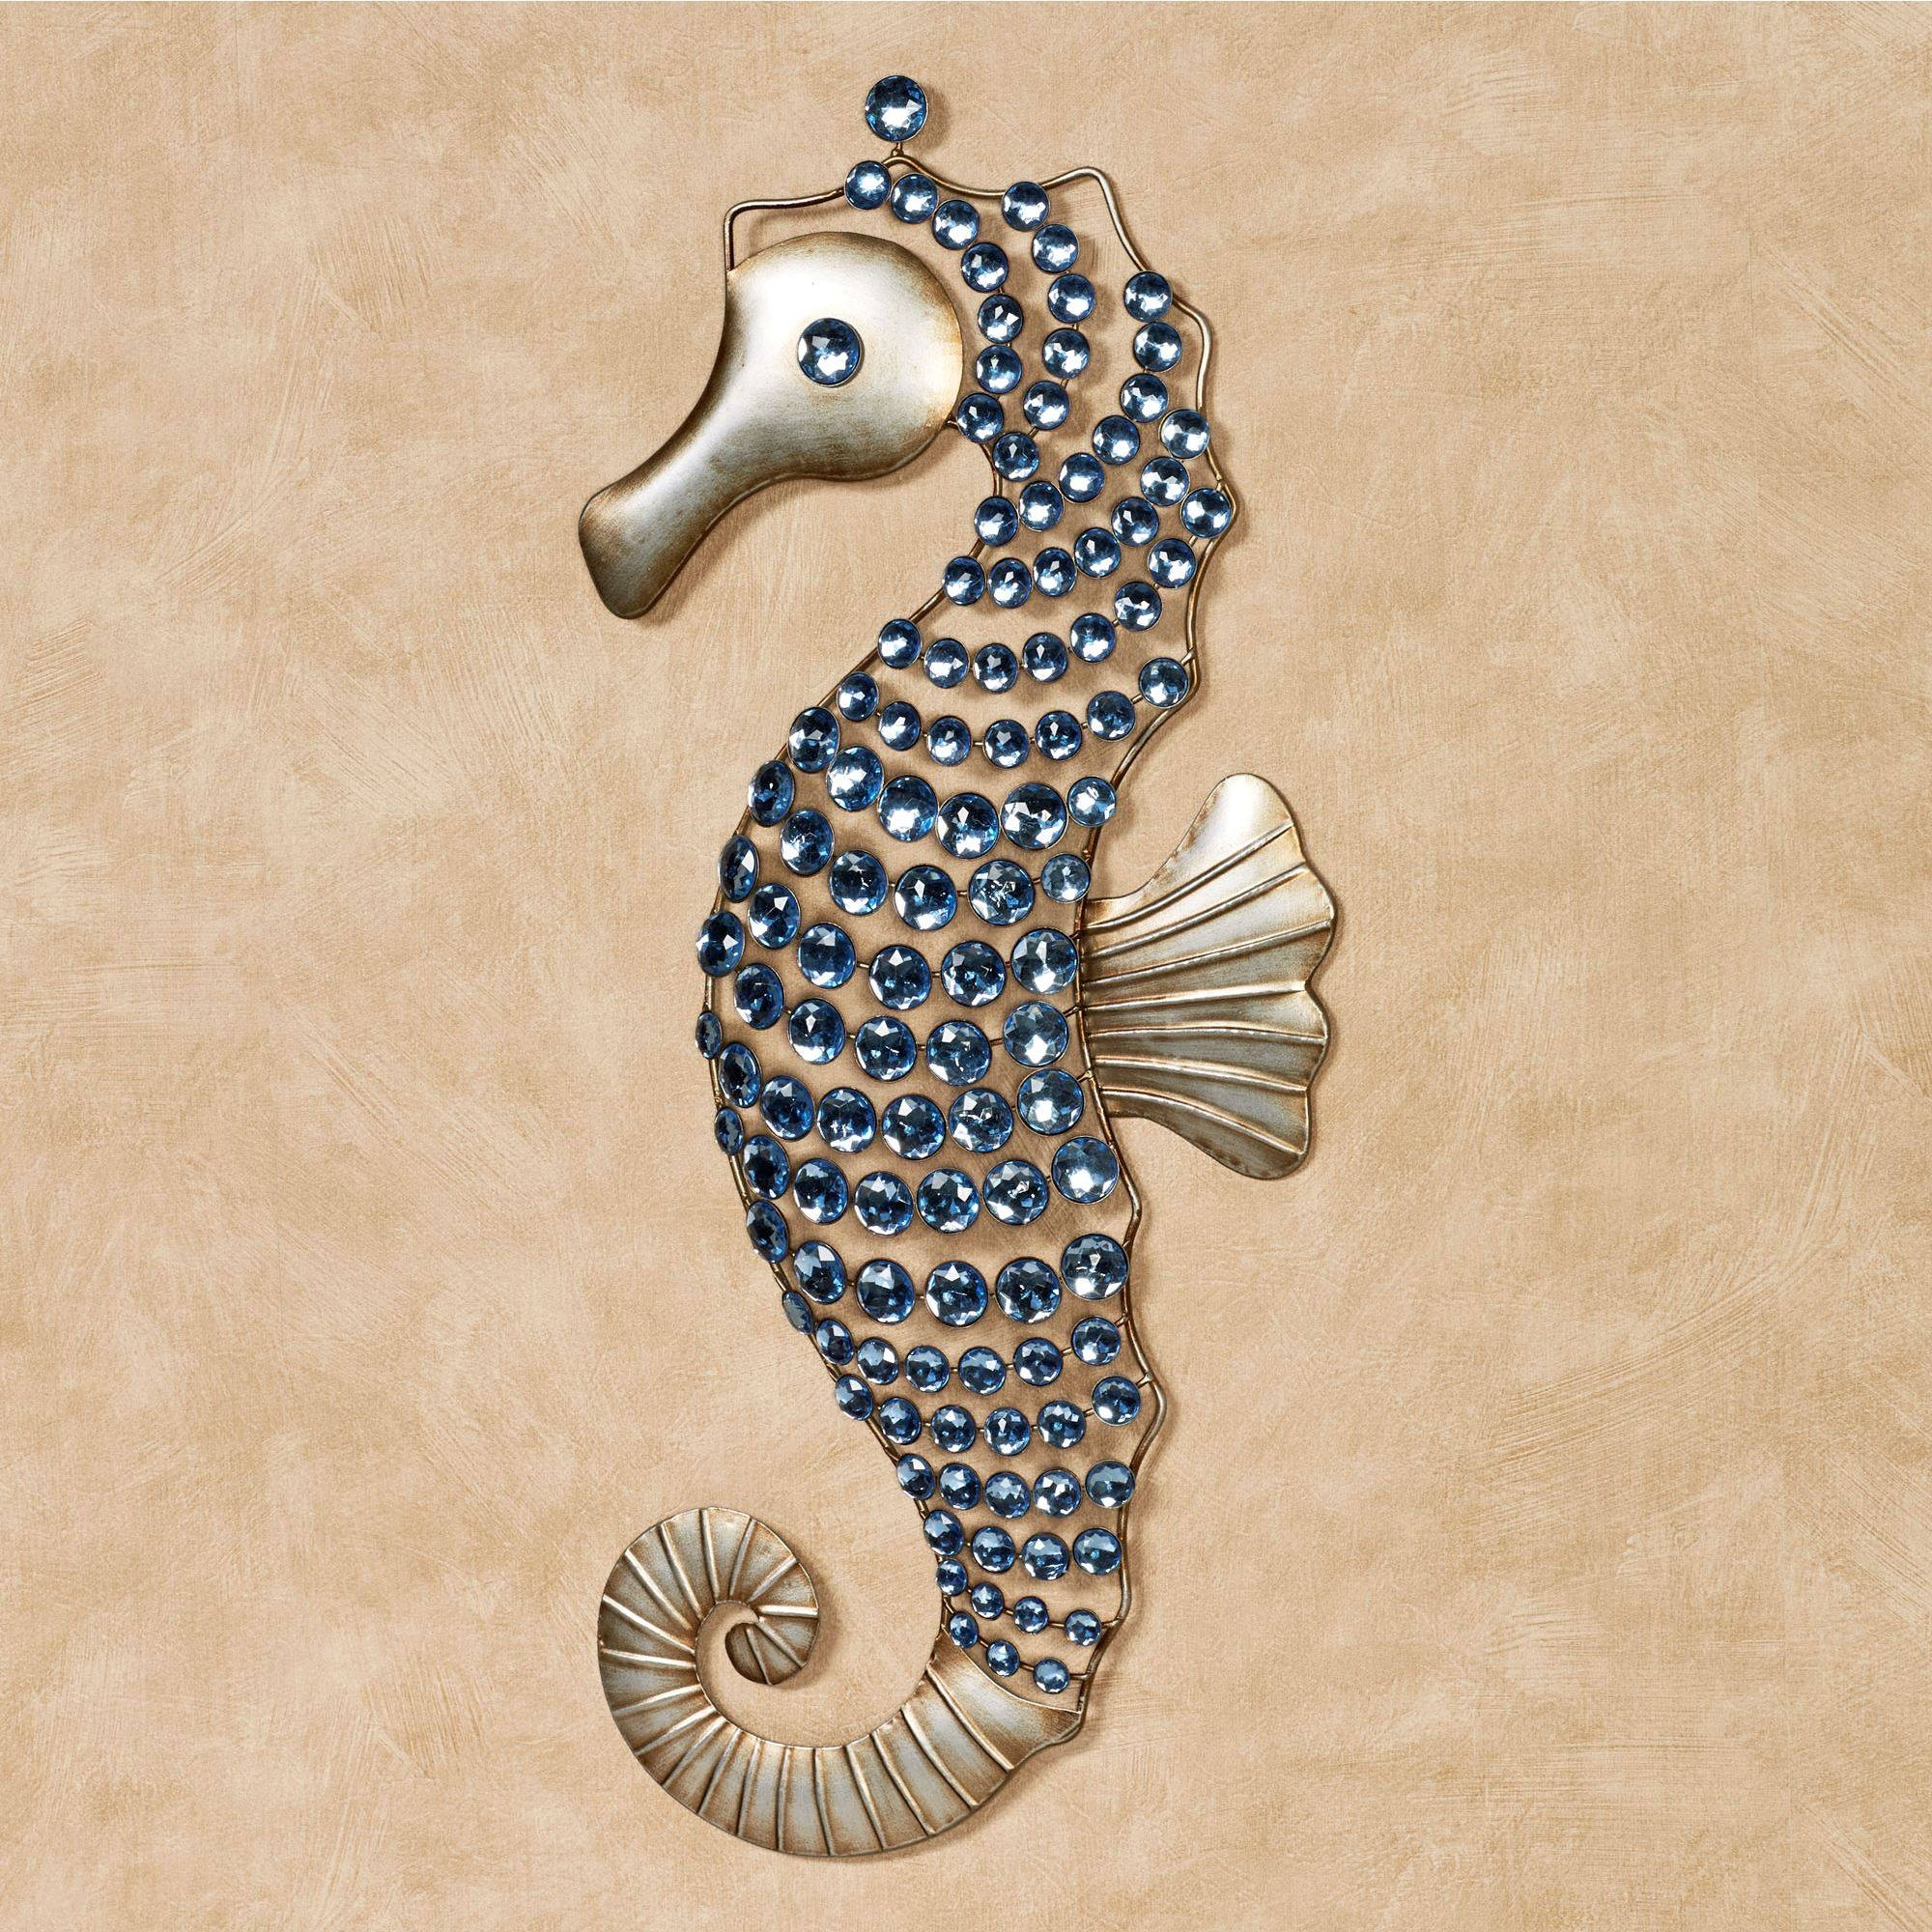 Charming Trendy Wall Filename S Ljpg Metal Wall Art Fish Shoal Inside 2018 Fish Shoal Metal Wall Art (View 9 of 30)